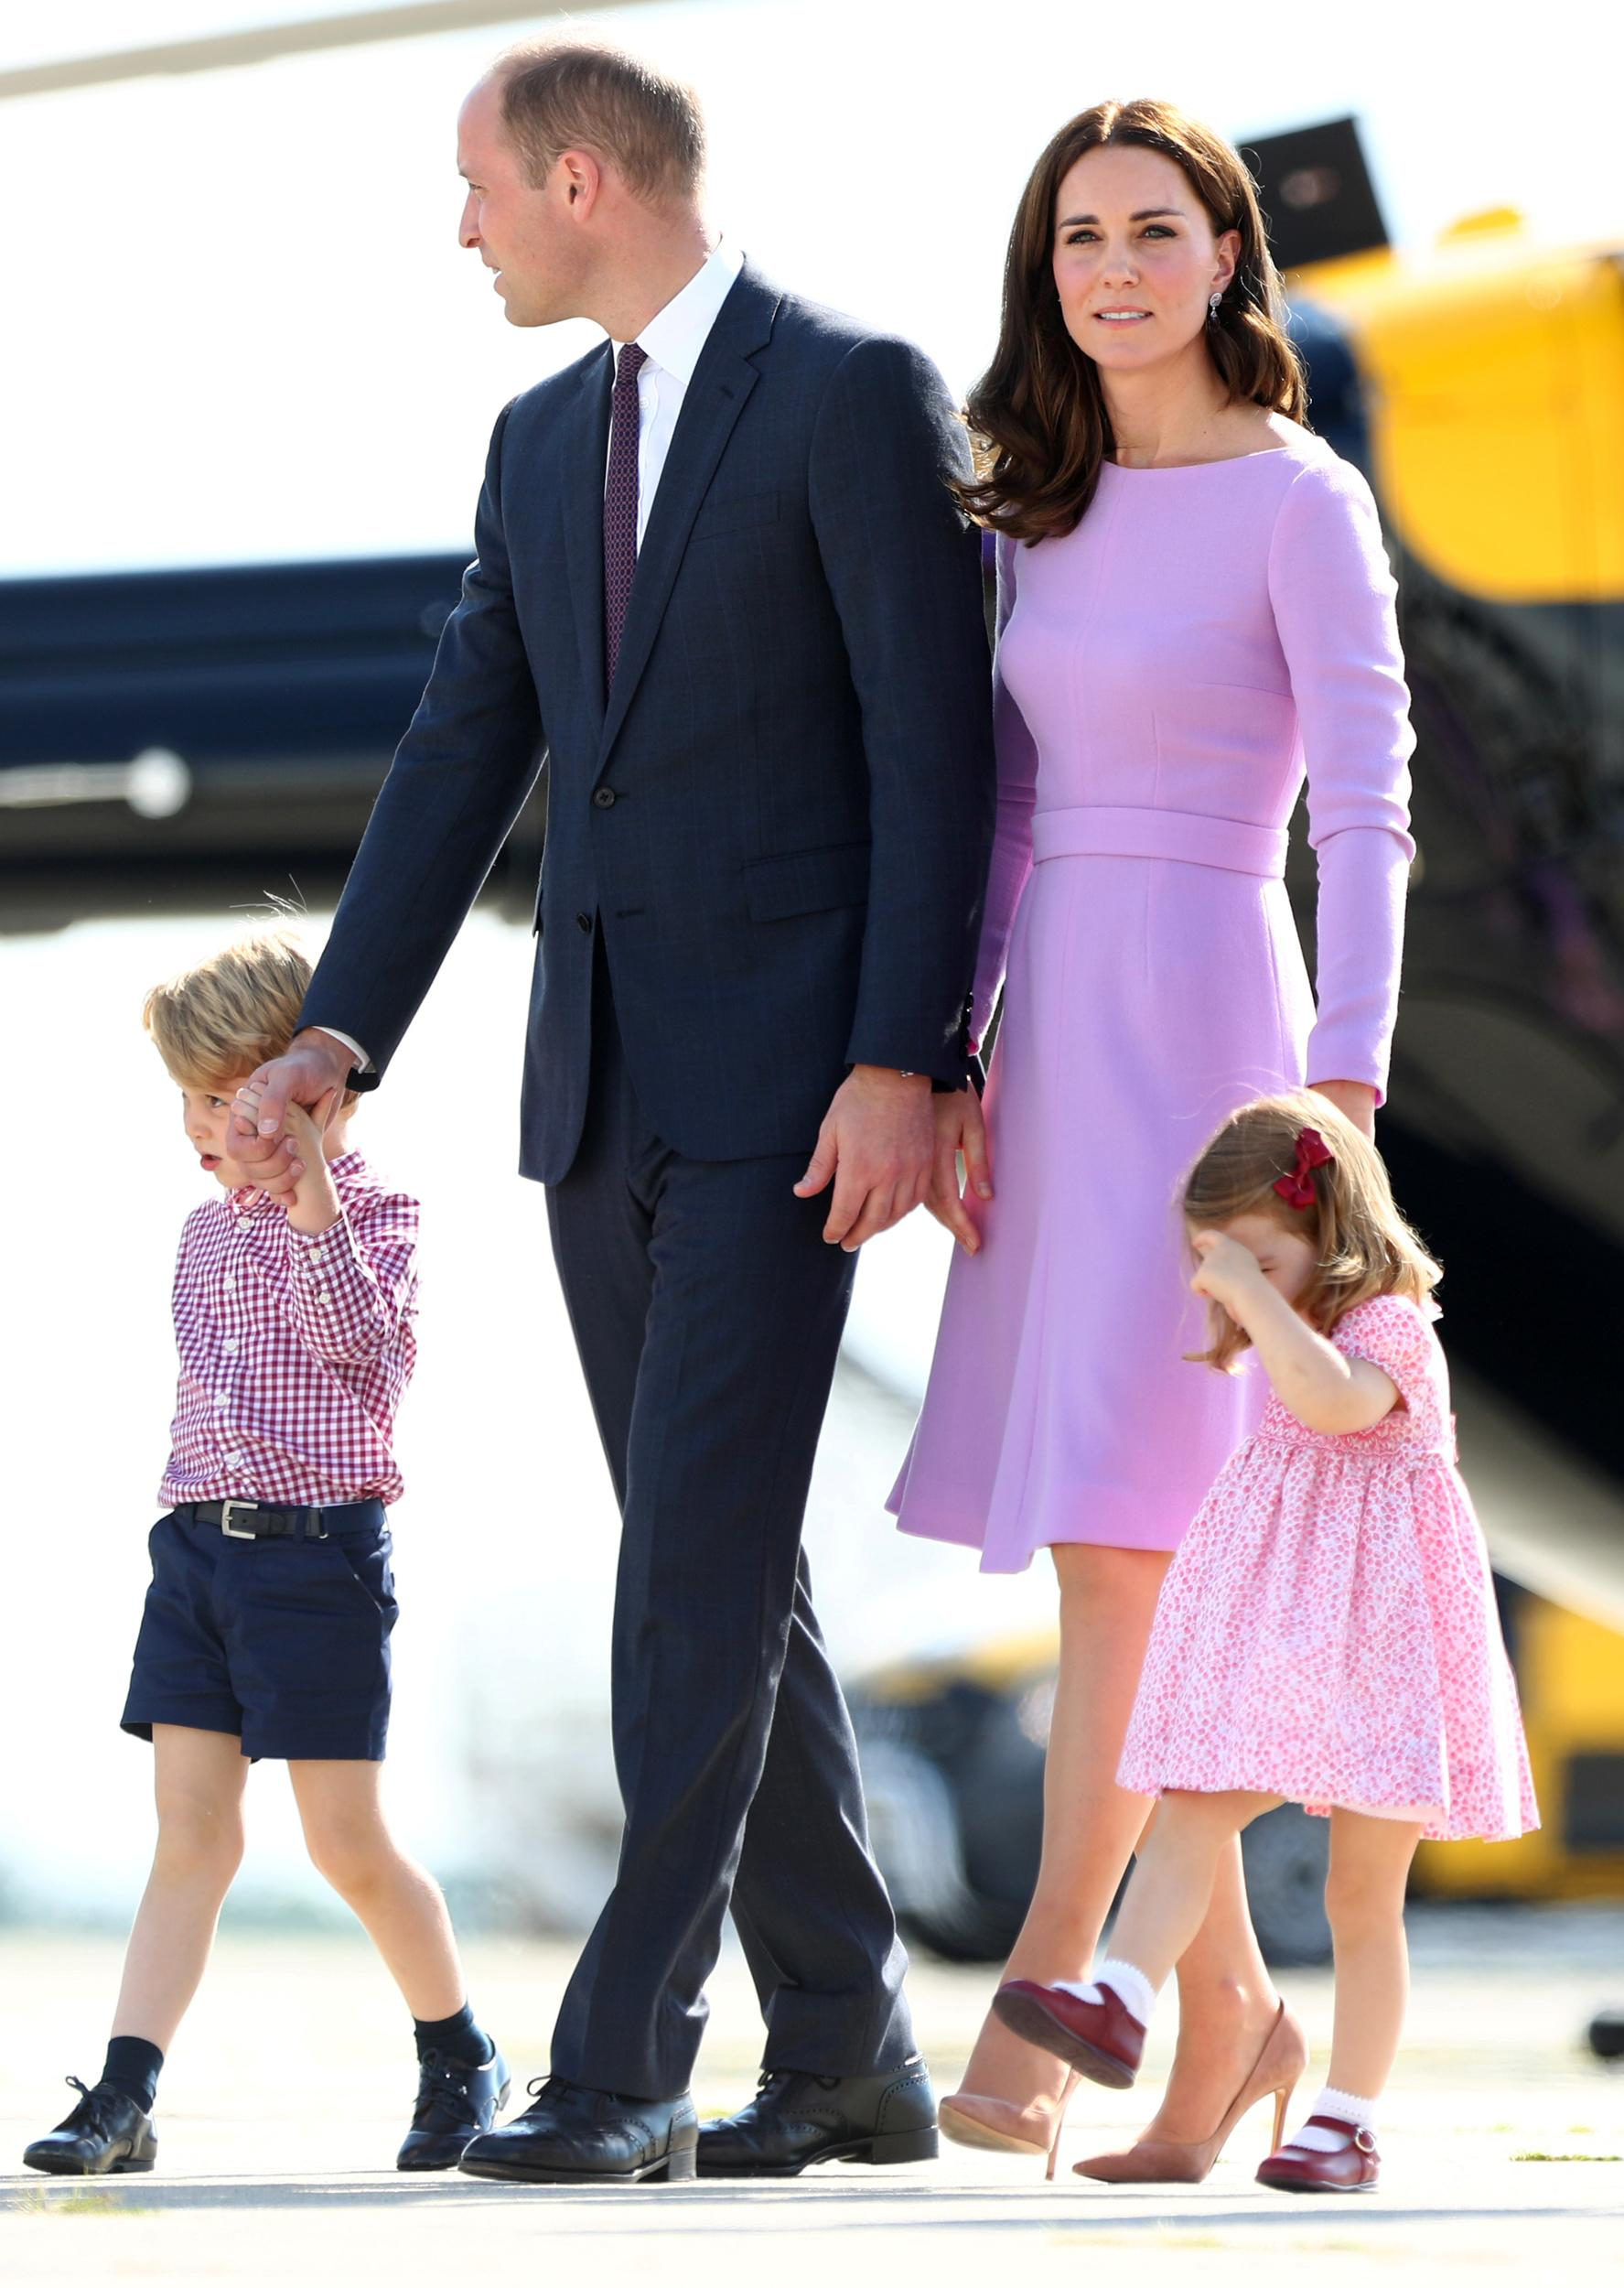 Britain's Prince William, the Duke of Cambridge, his wife Princess Kate, the Duchess of Cambridge, Prince George and Princess Charlotte walk past helicopters at the airfield in Hamburg Finkenwerder, Germany, July 21, 2017.    REUTERS/Christian Charisius/POOL